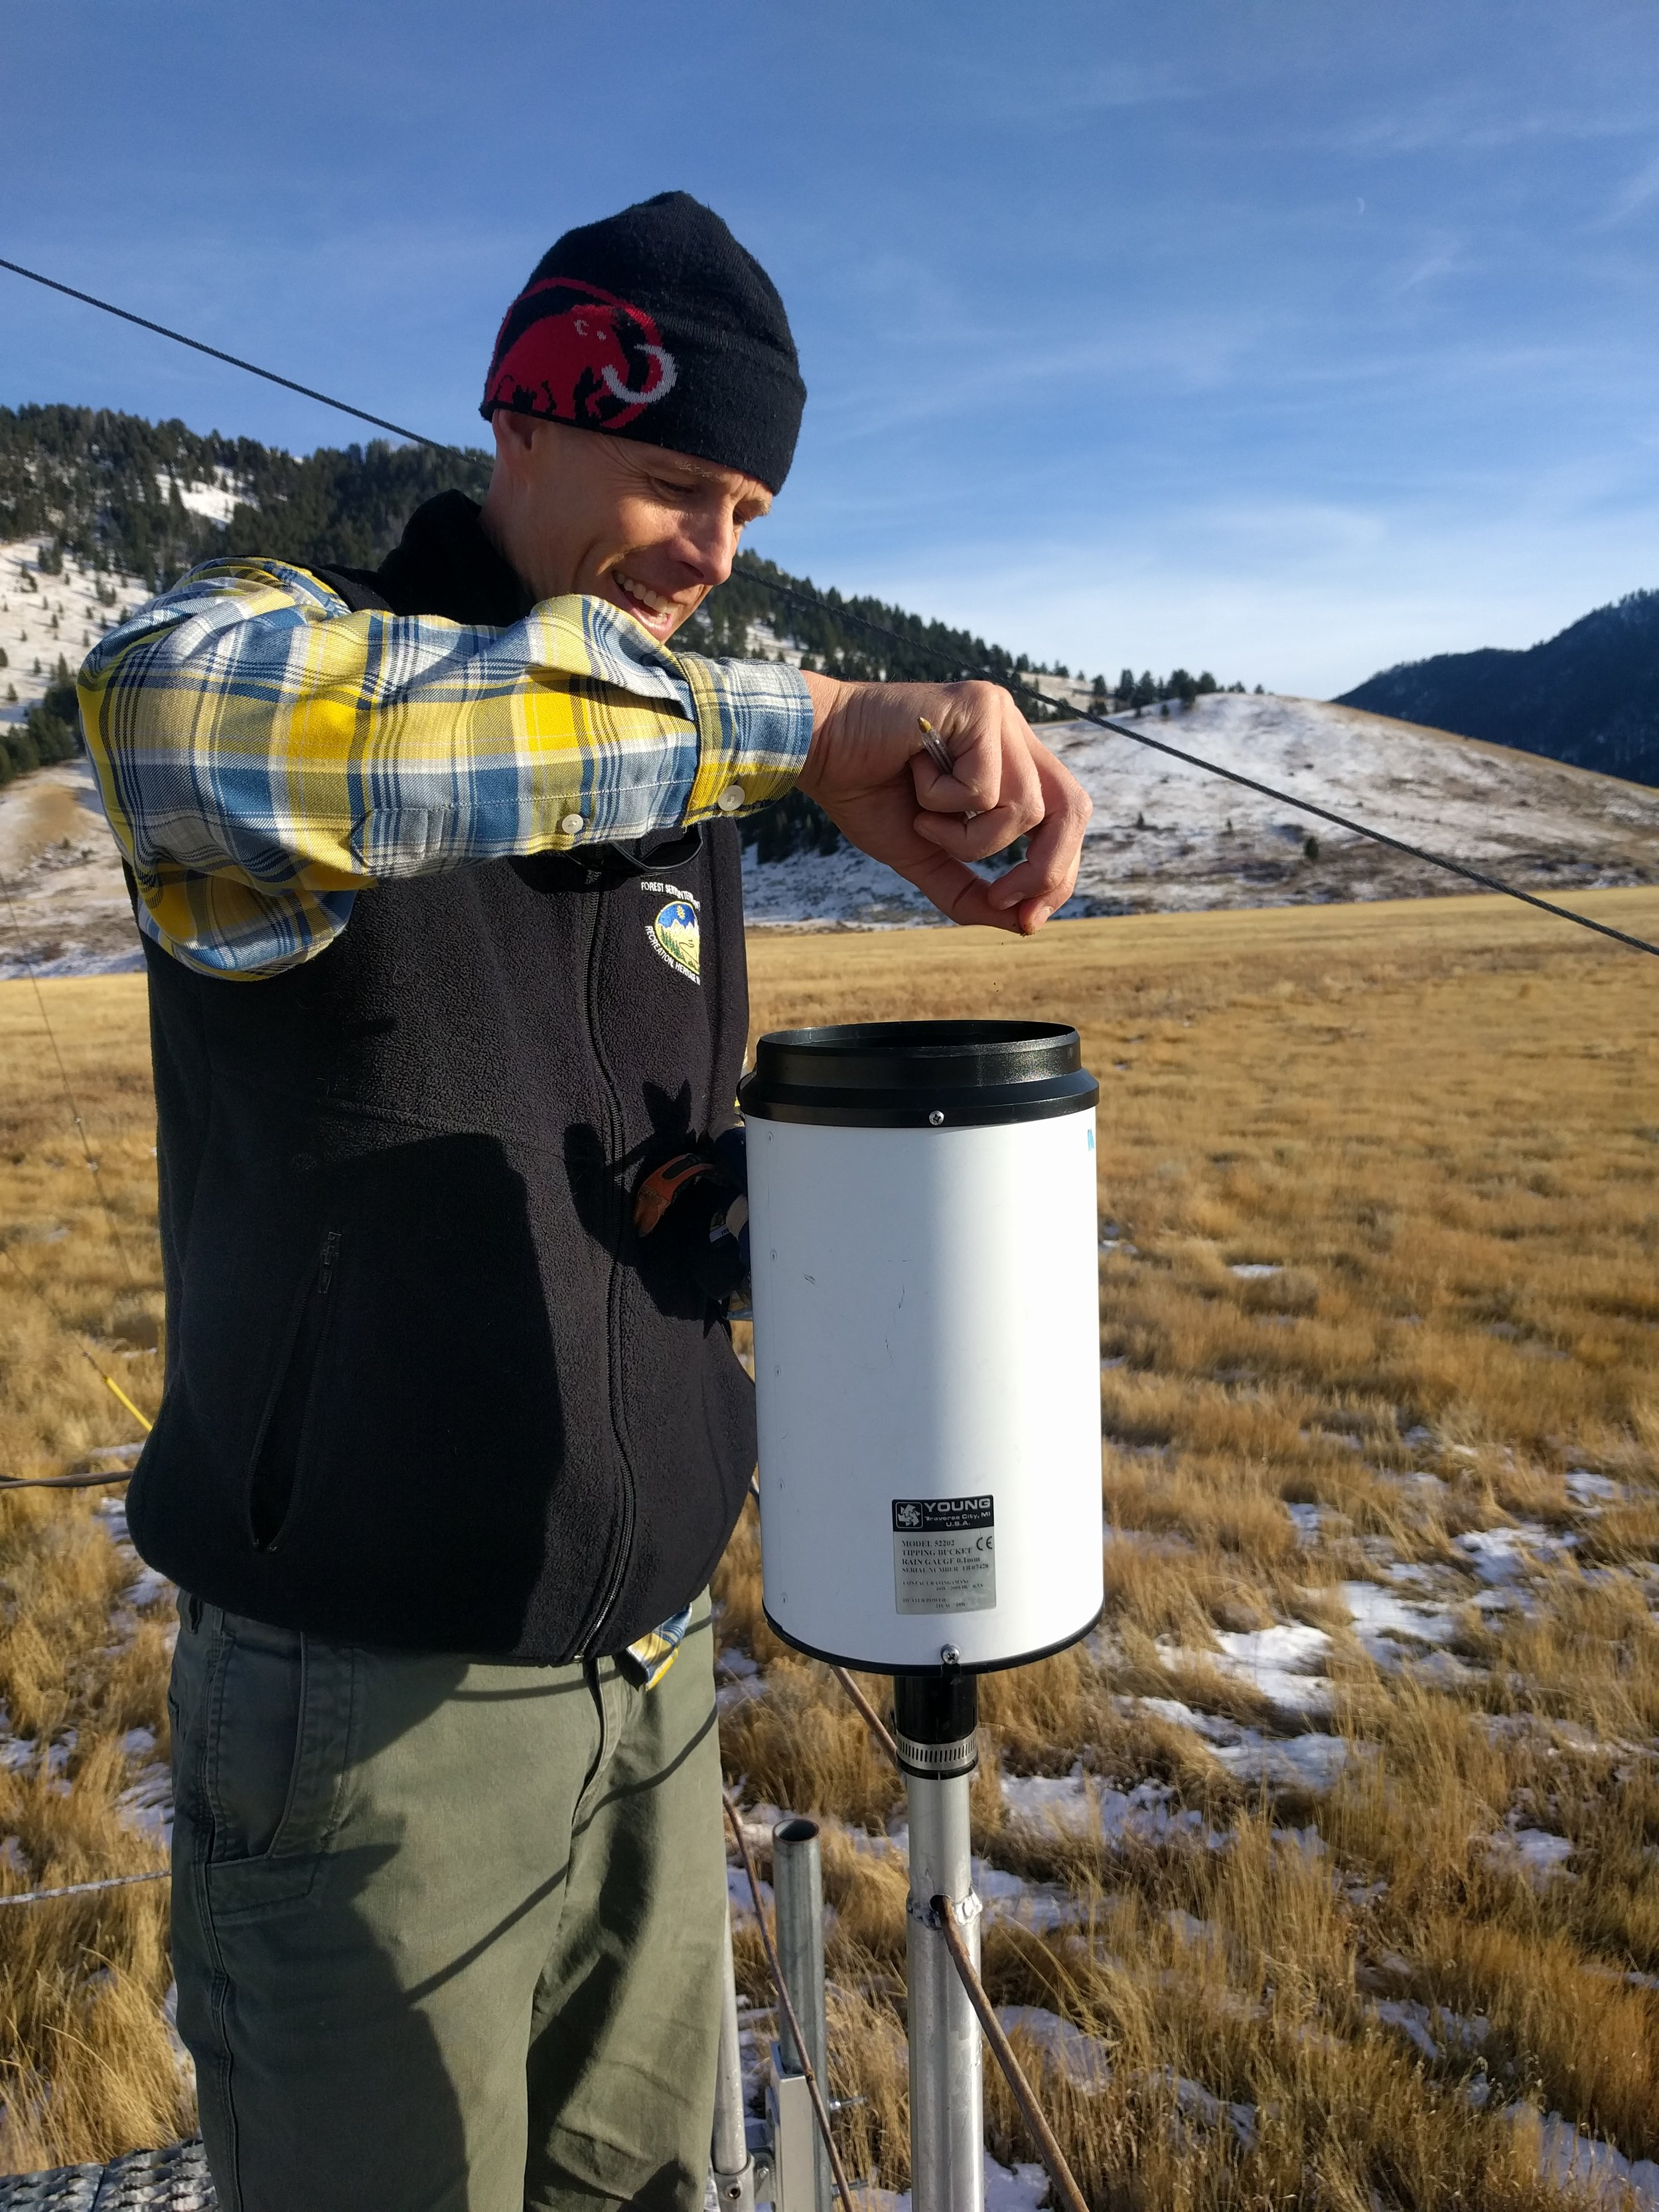 Robb removing bird droppings from the rain gauge.